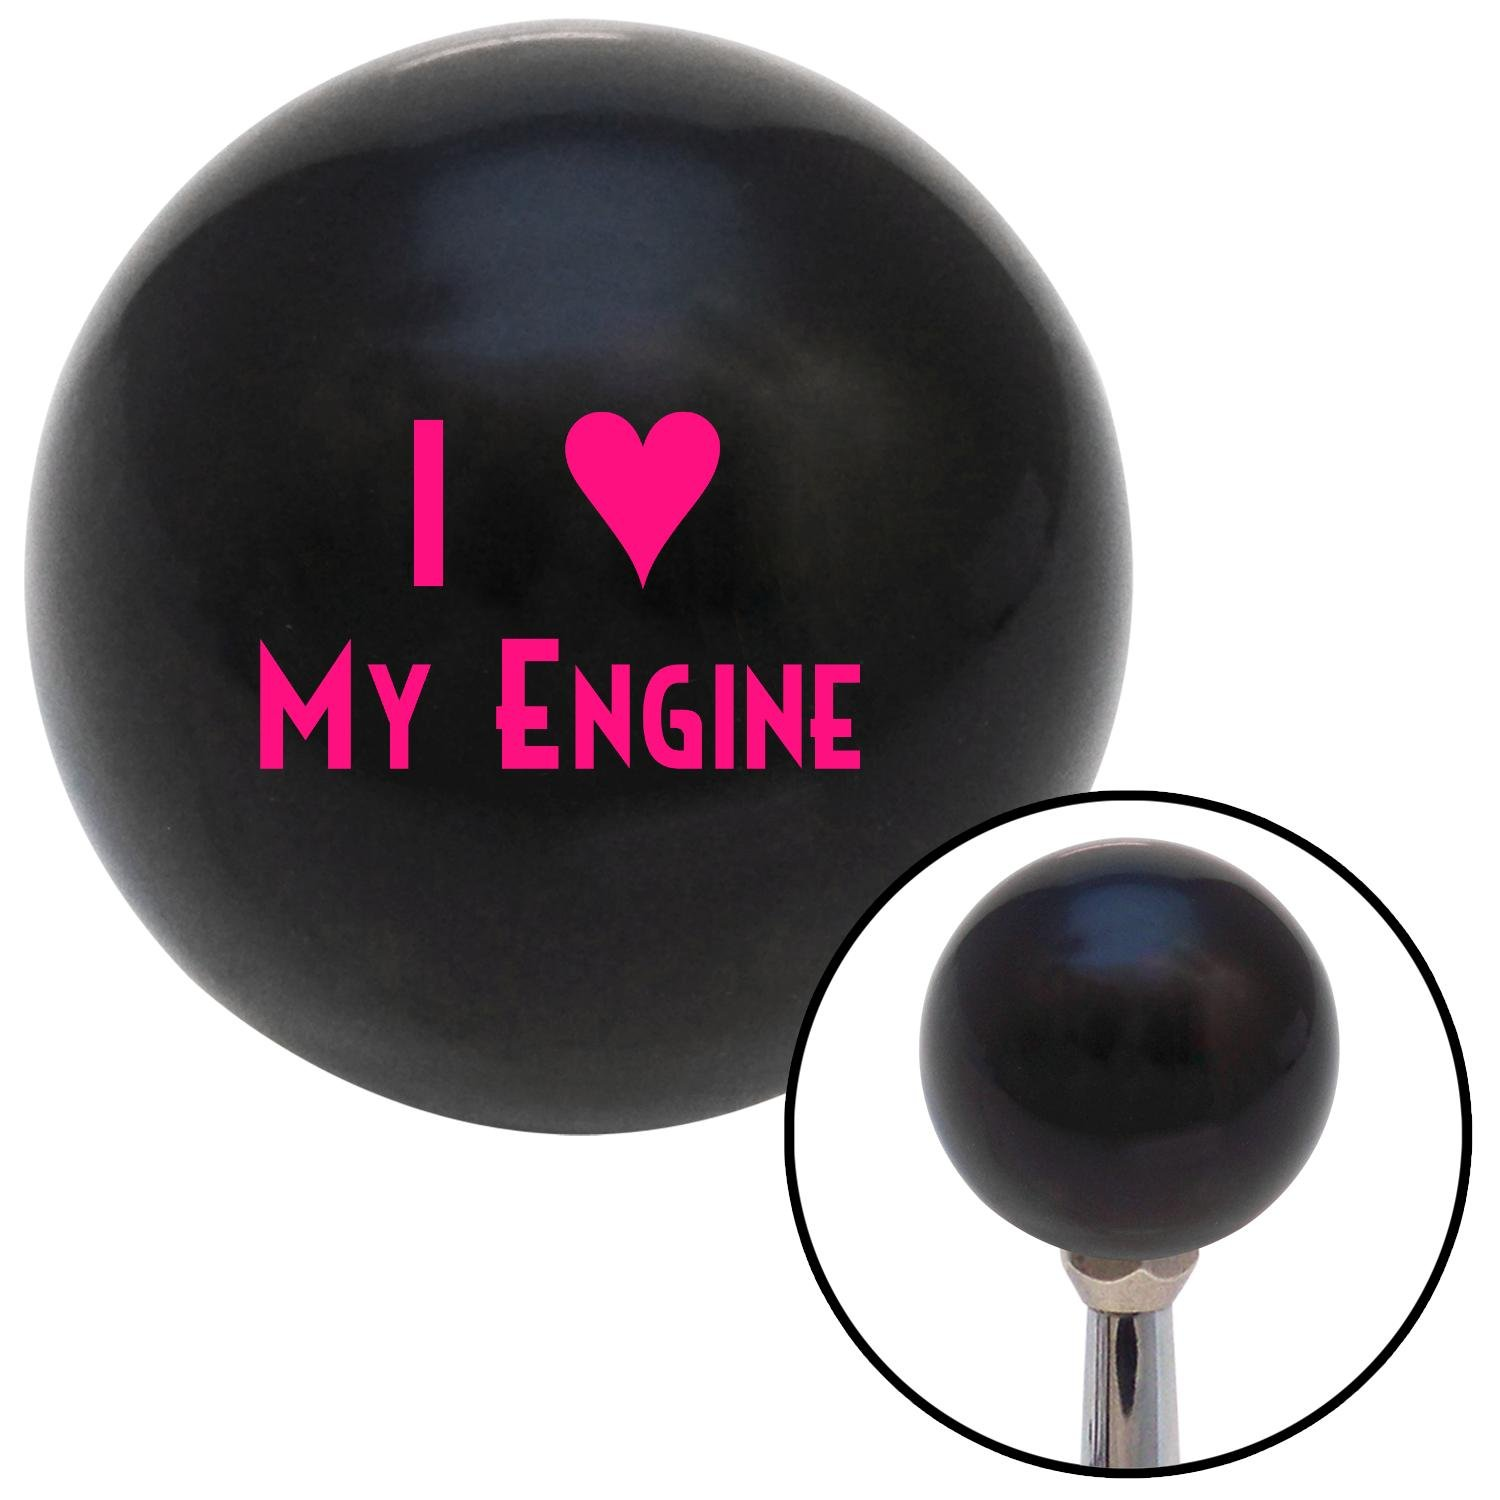 American Shifter 105691 Black Shift Knob with M16 x 1.5 Insert Pink I 3 My Engine